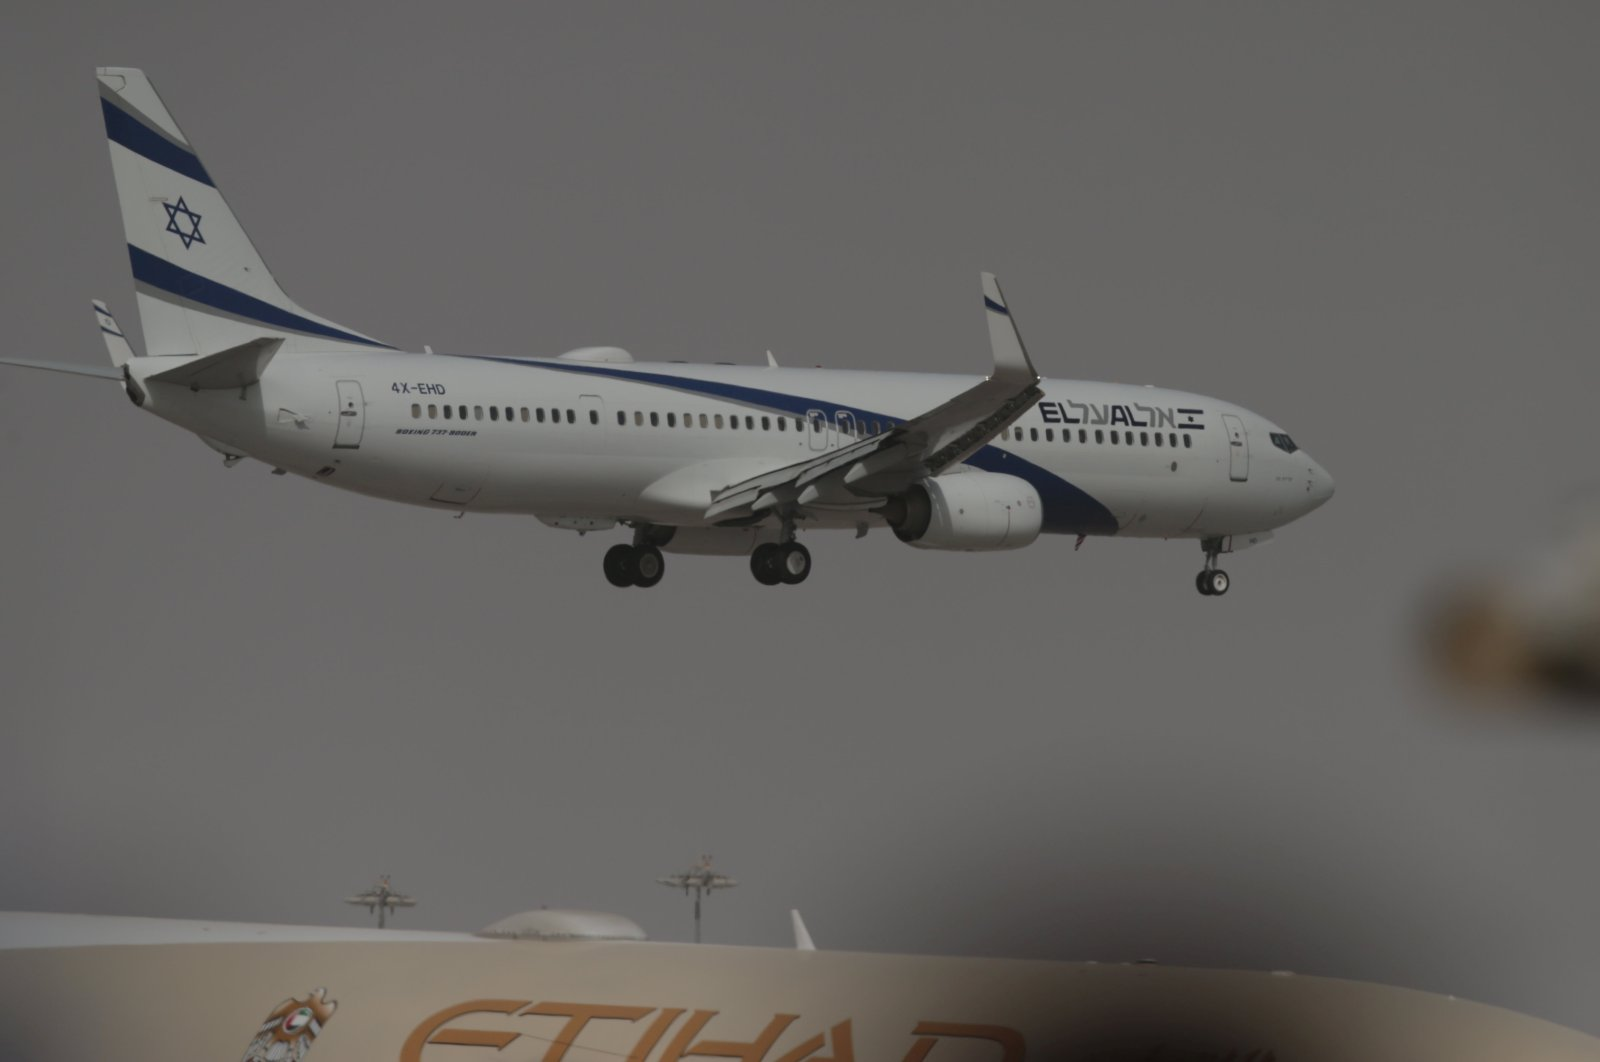 The Israeli flag carrier El Al's airliner carrying Israeli and U.S. delegates approaches to land at Abu Dhabi International Airport, in Abu Dhabi, United Arab Emirates August 31, 2020. (Reuters File Photo)